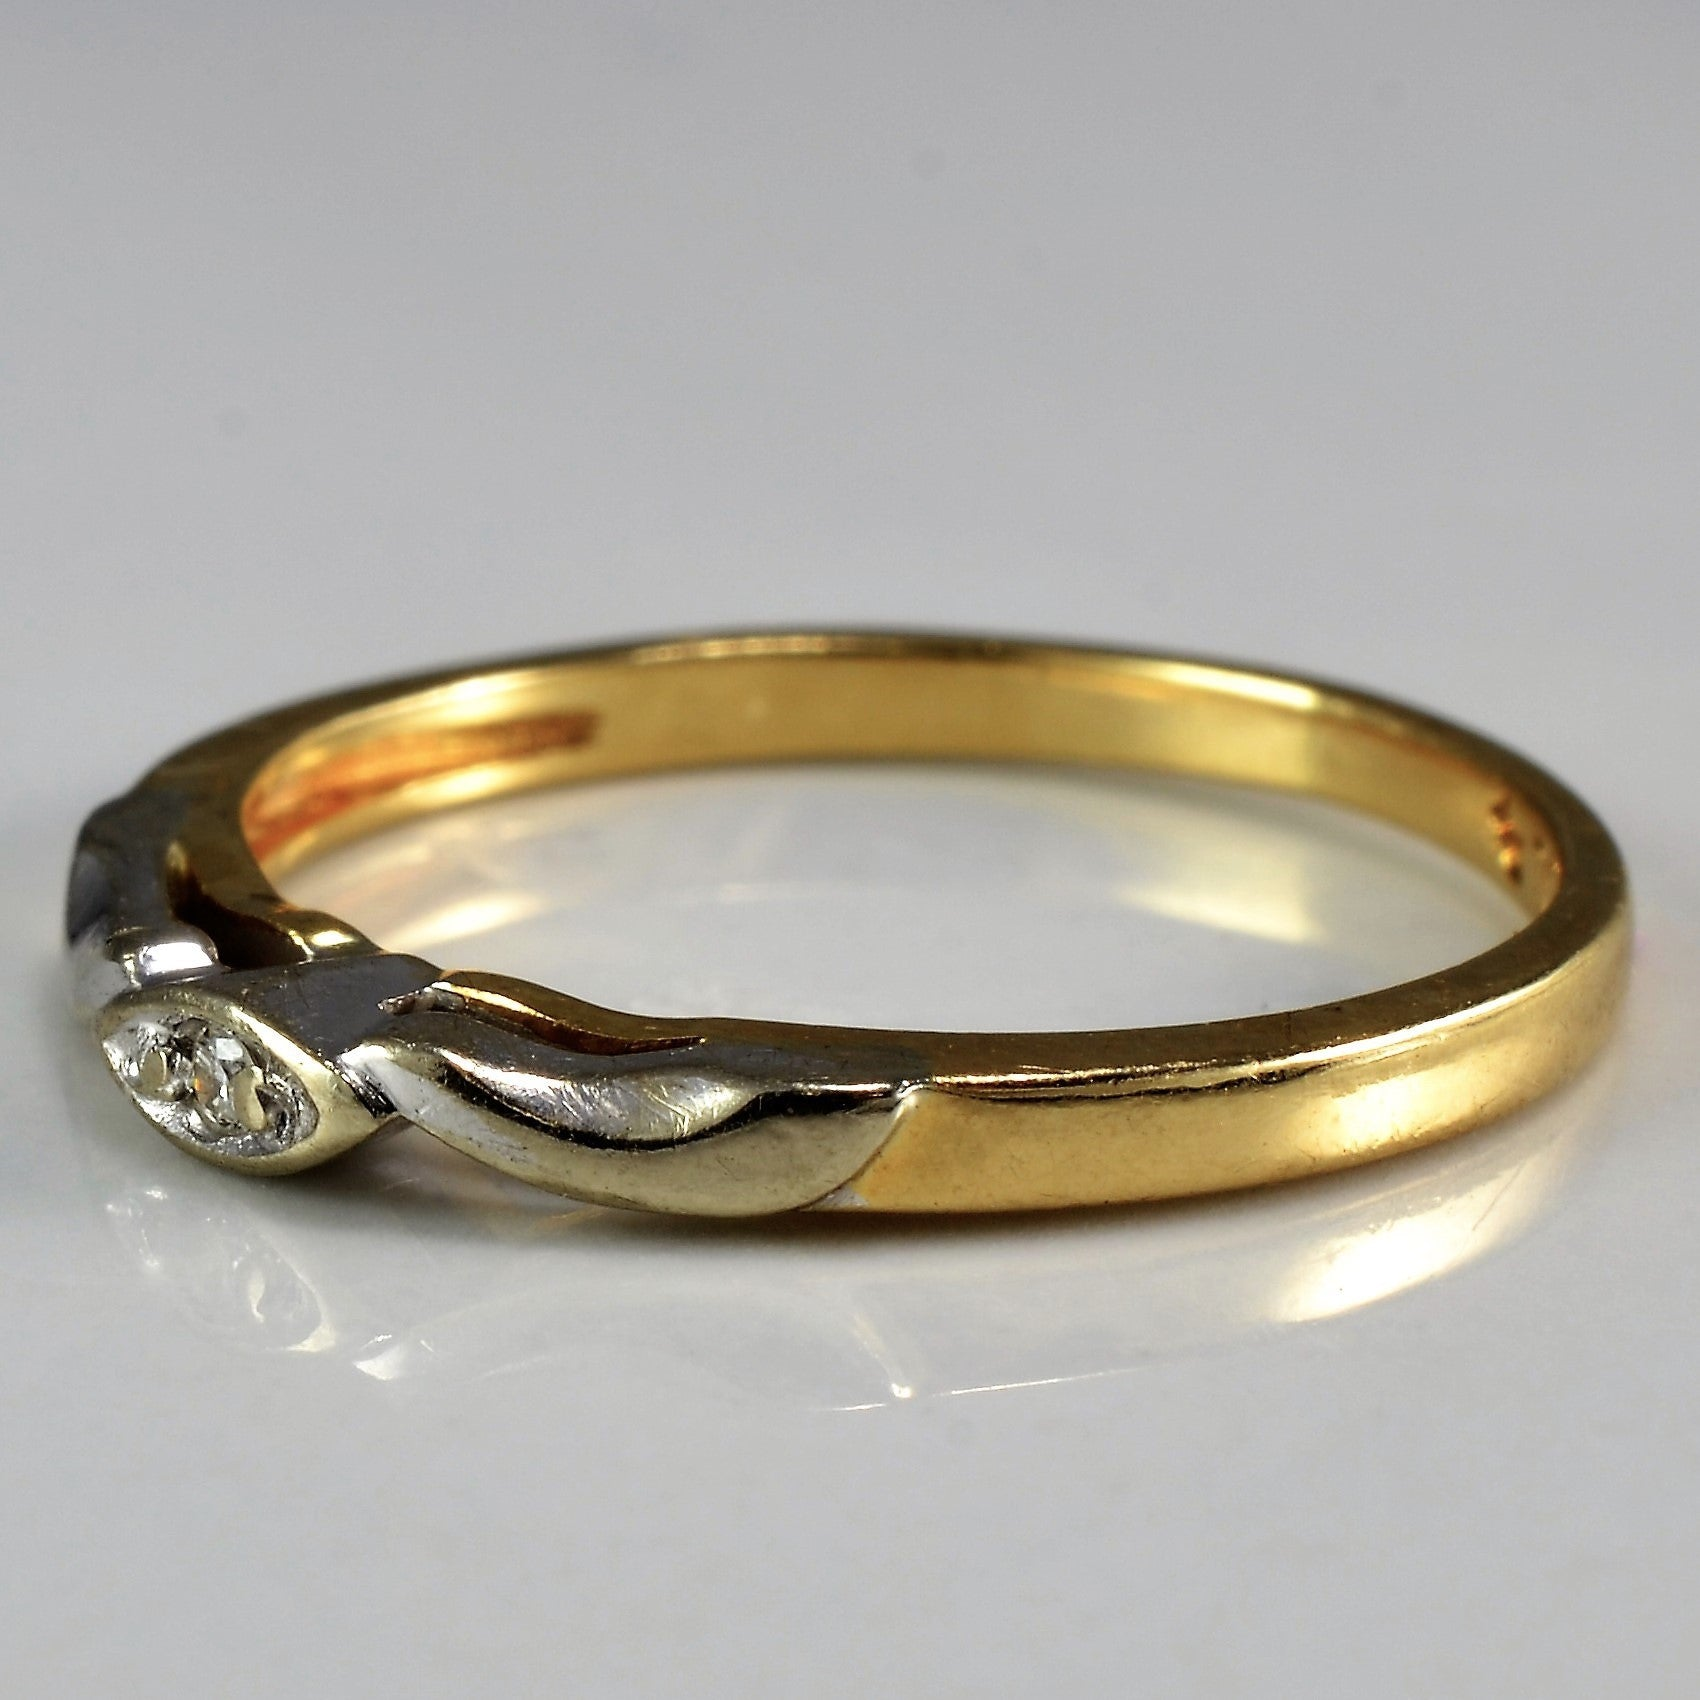 Vintage Two Tone Diamond Wedding Band | 0.01 ct, SZ 5.25 |